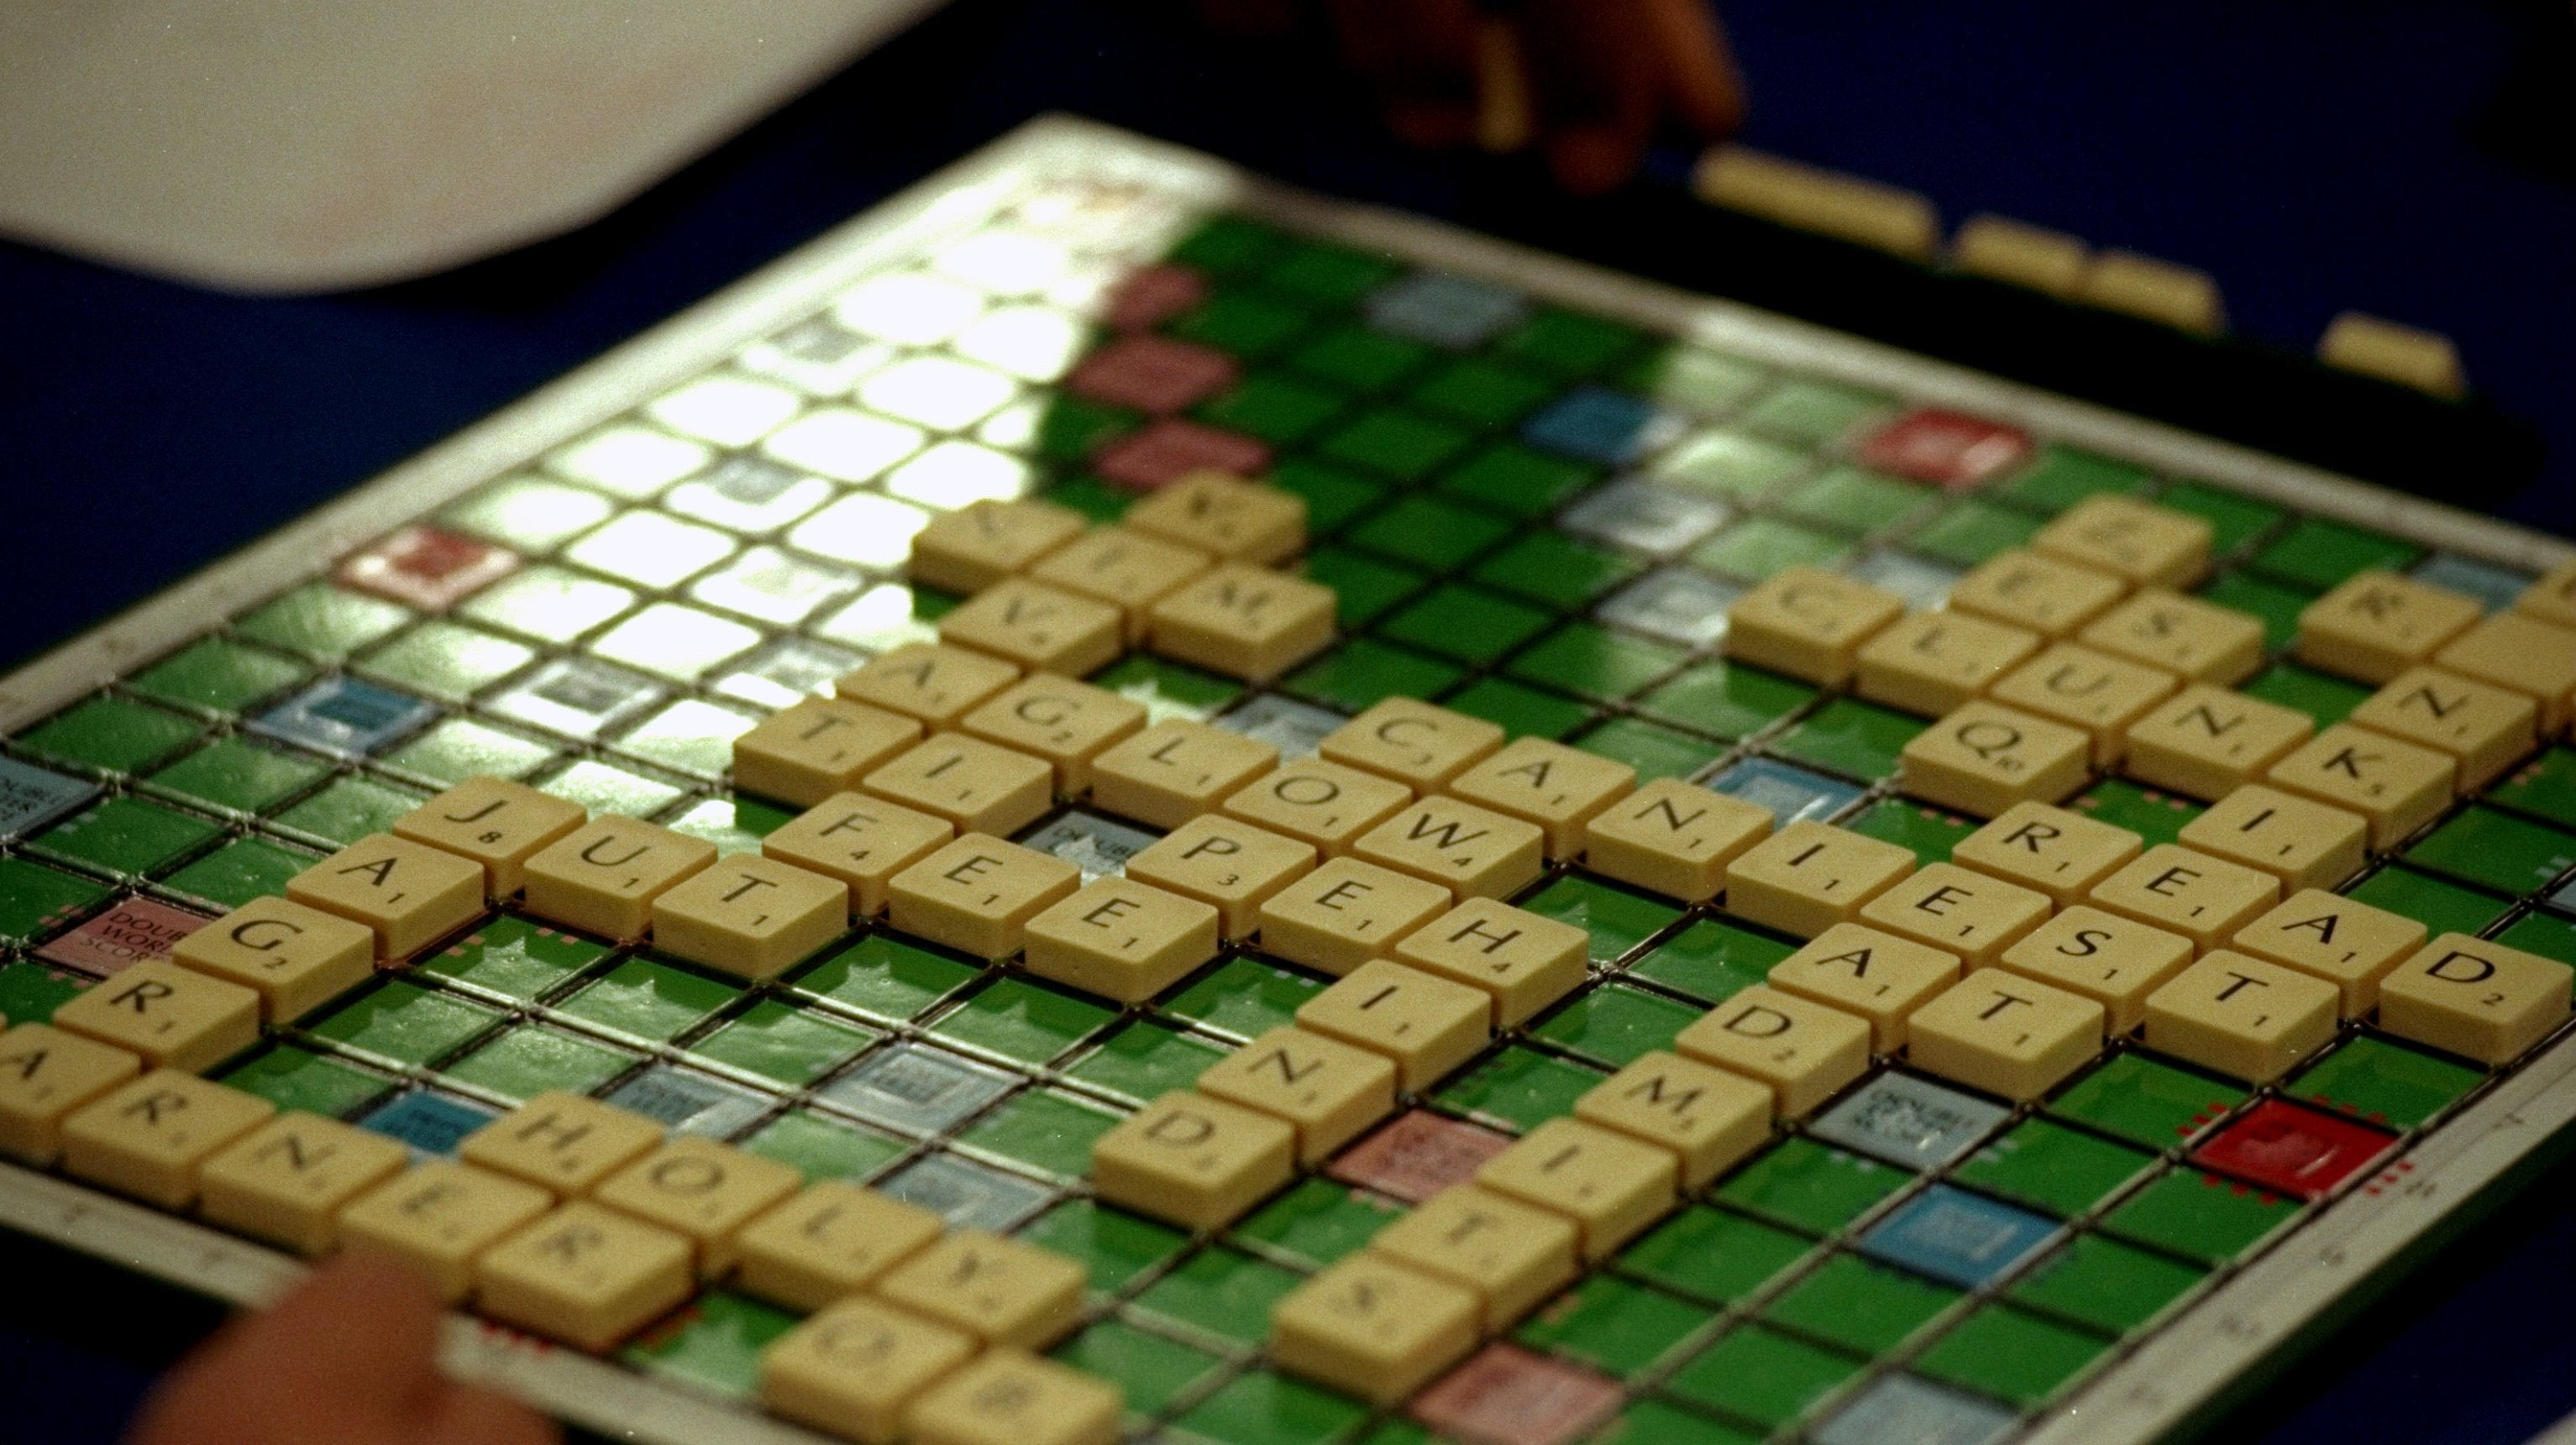 Scrabble Adds 300 New Words, Like 'Sheeple' And 'OK'